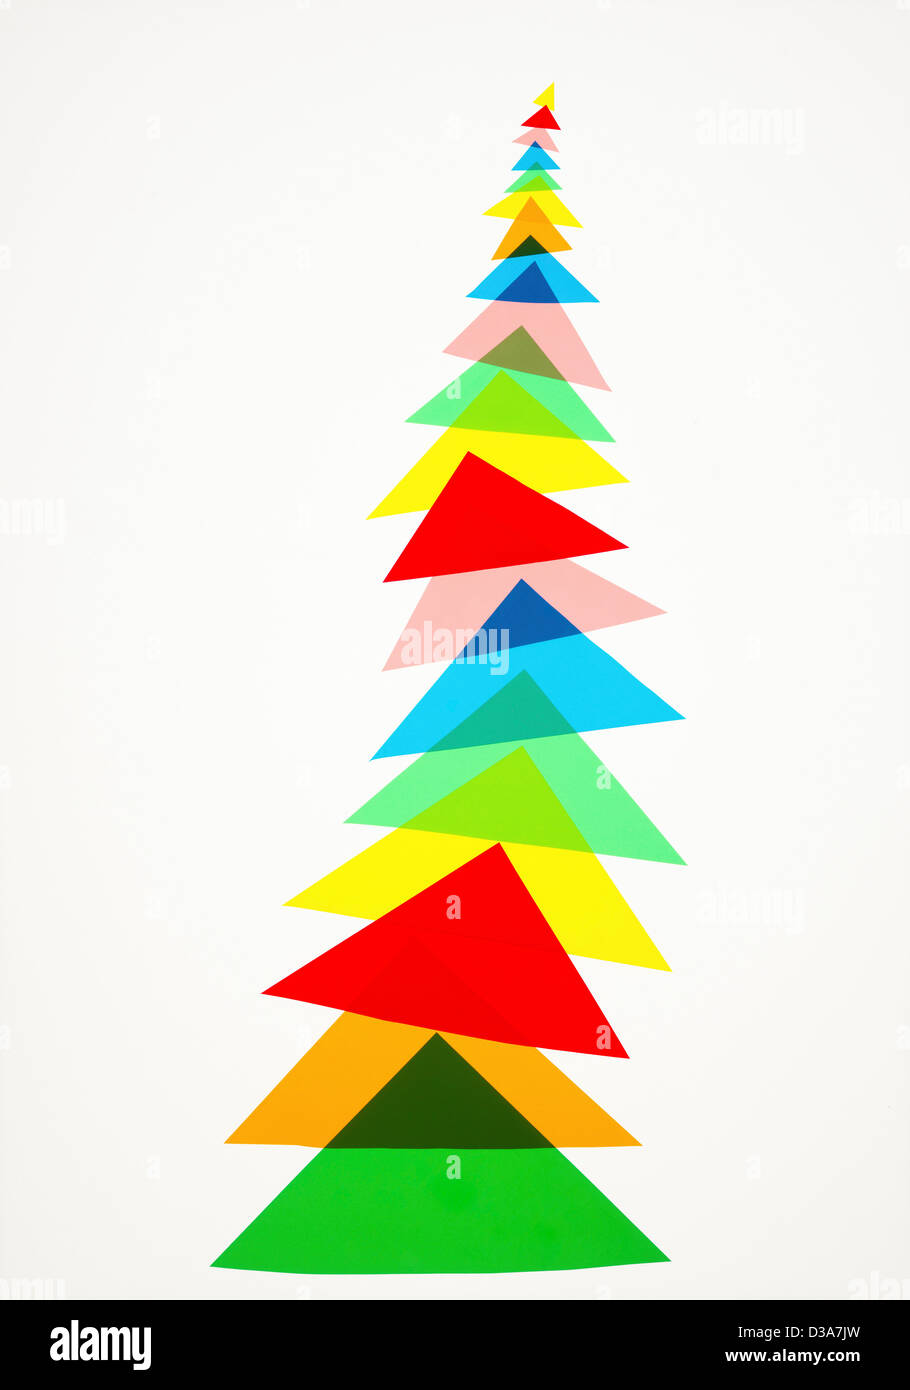 Illustration of colorful triangles - Stock Image